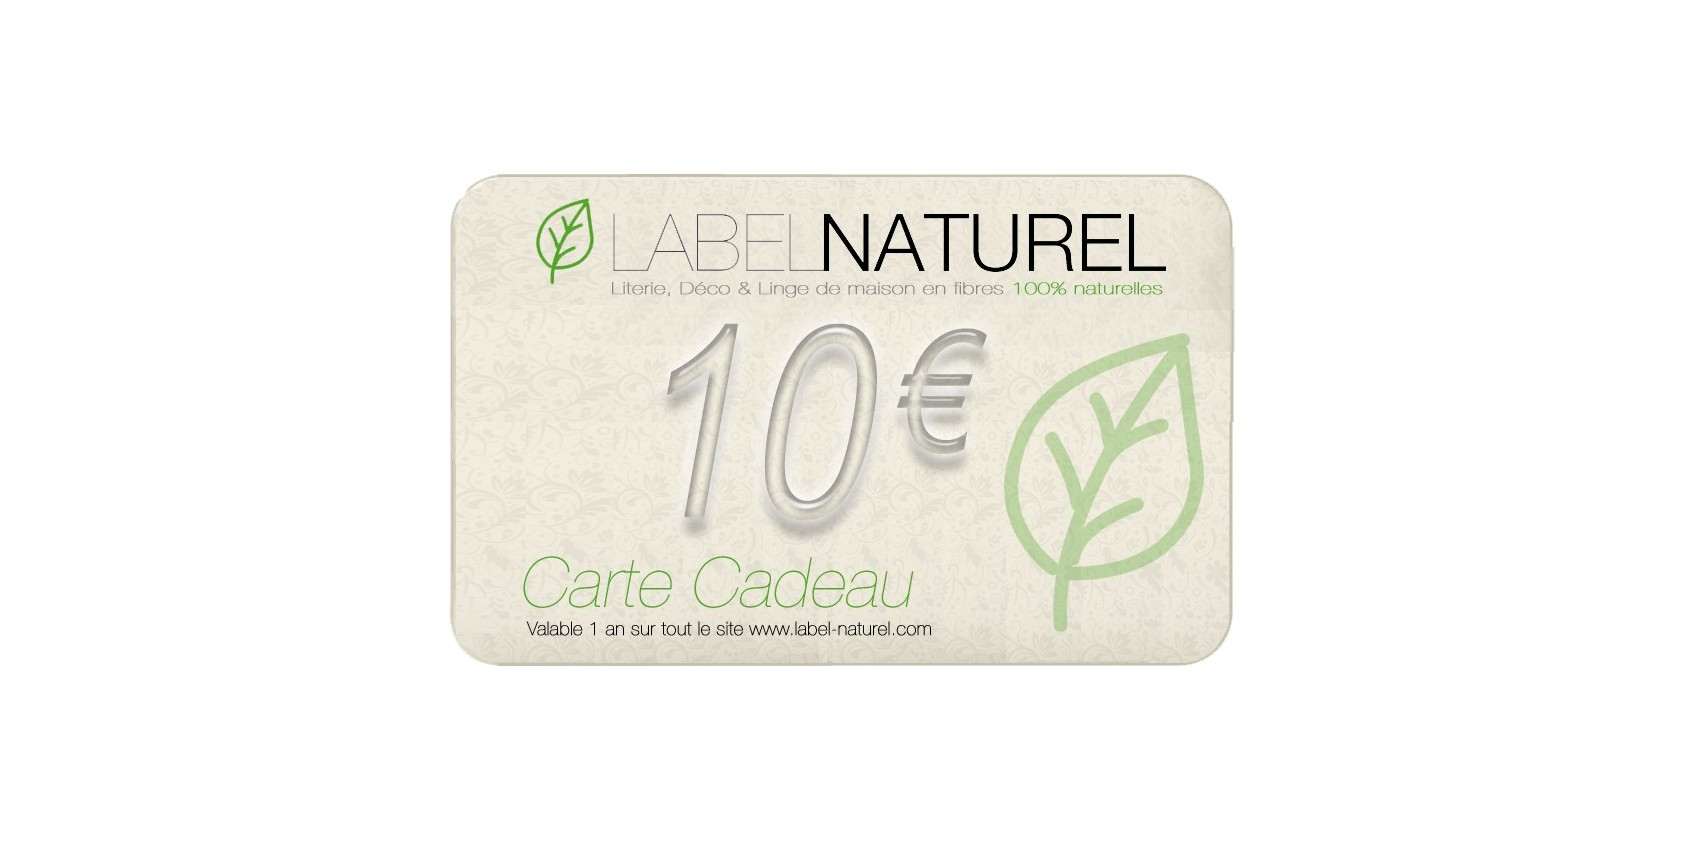 Carte Cadeau LABEL NATUREL